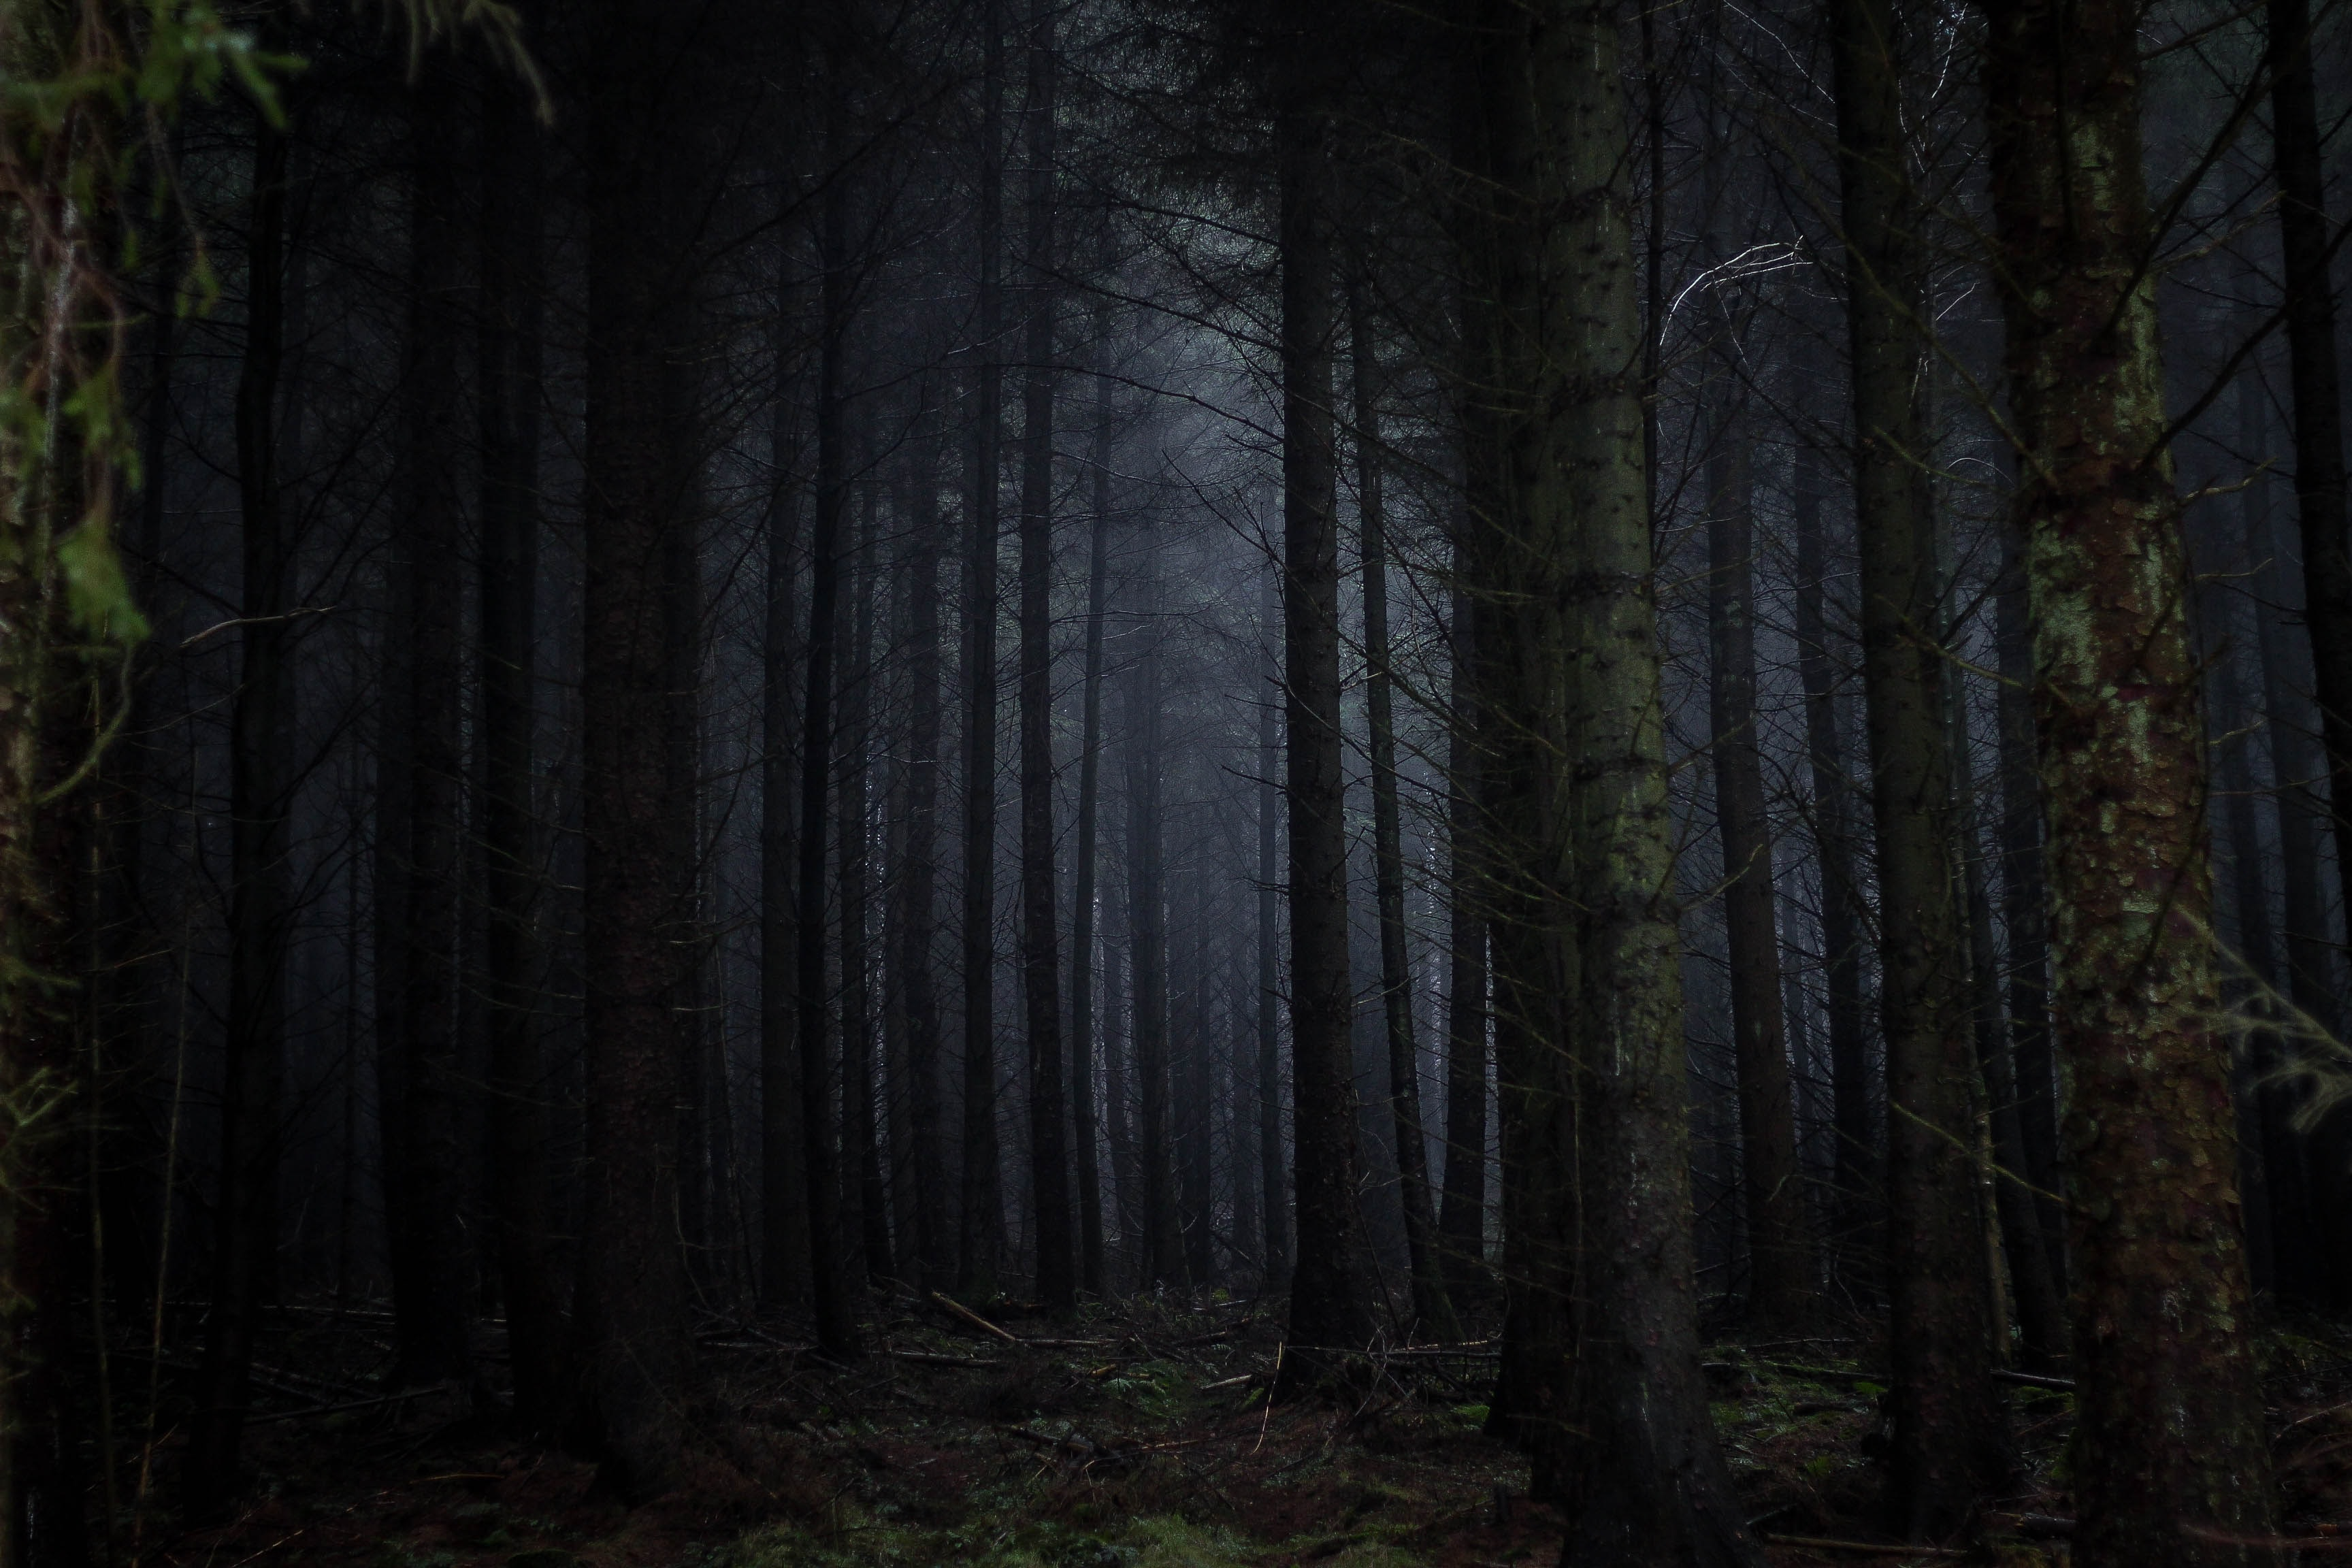 A dark coniferous forest